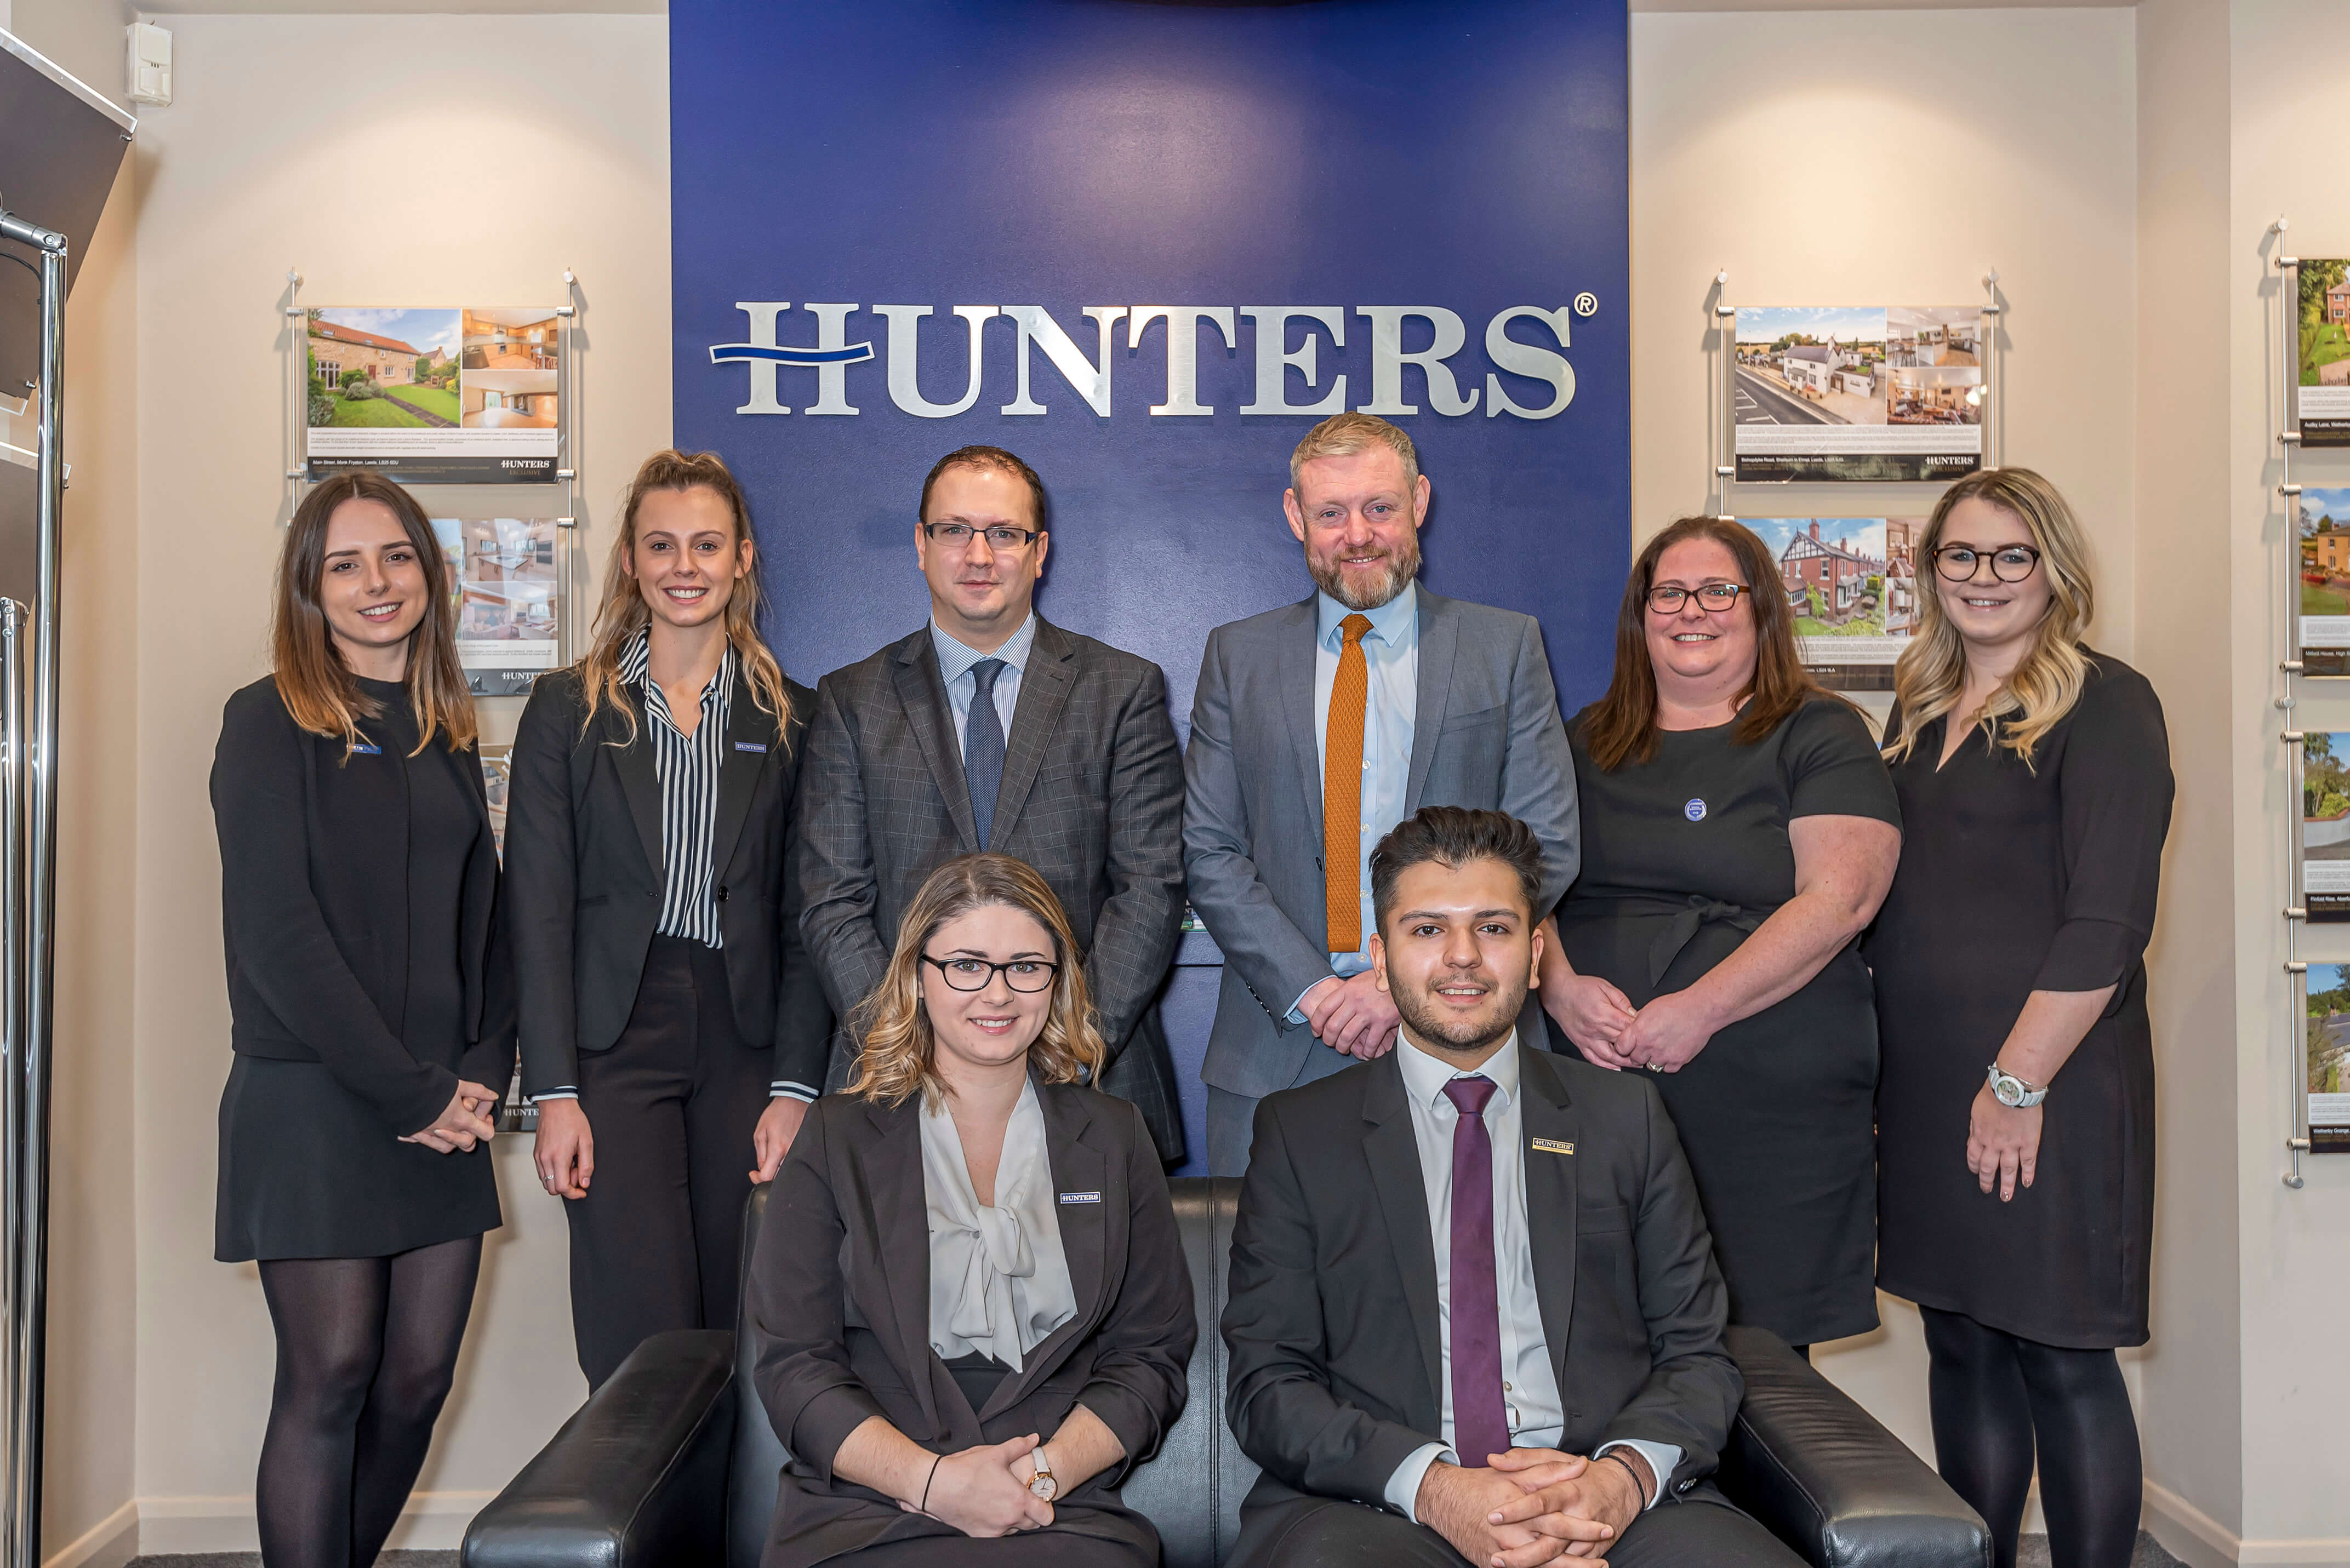 A photo of the Hunters Wetherby team in the office.